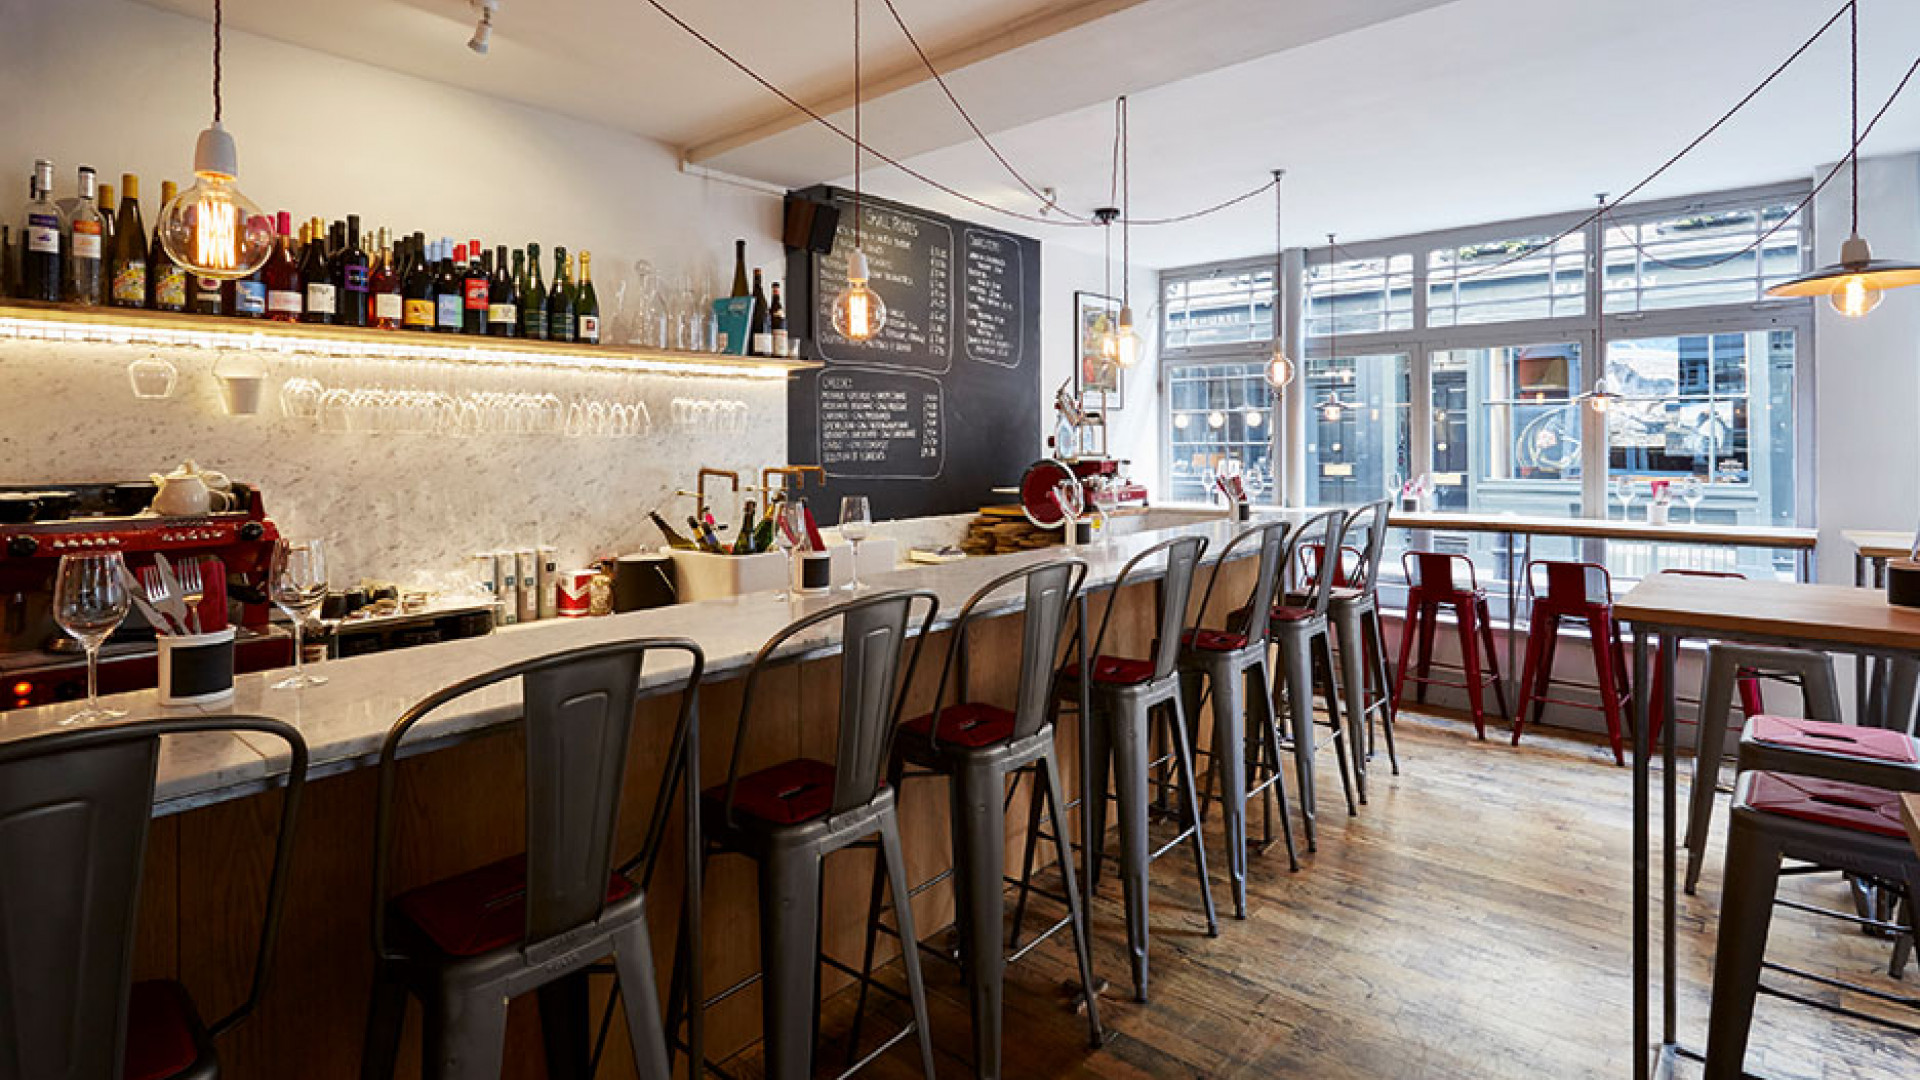 5 Of The Best London Restaurants For Dining At The Bar